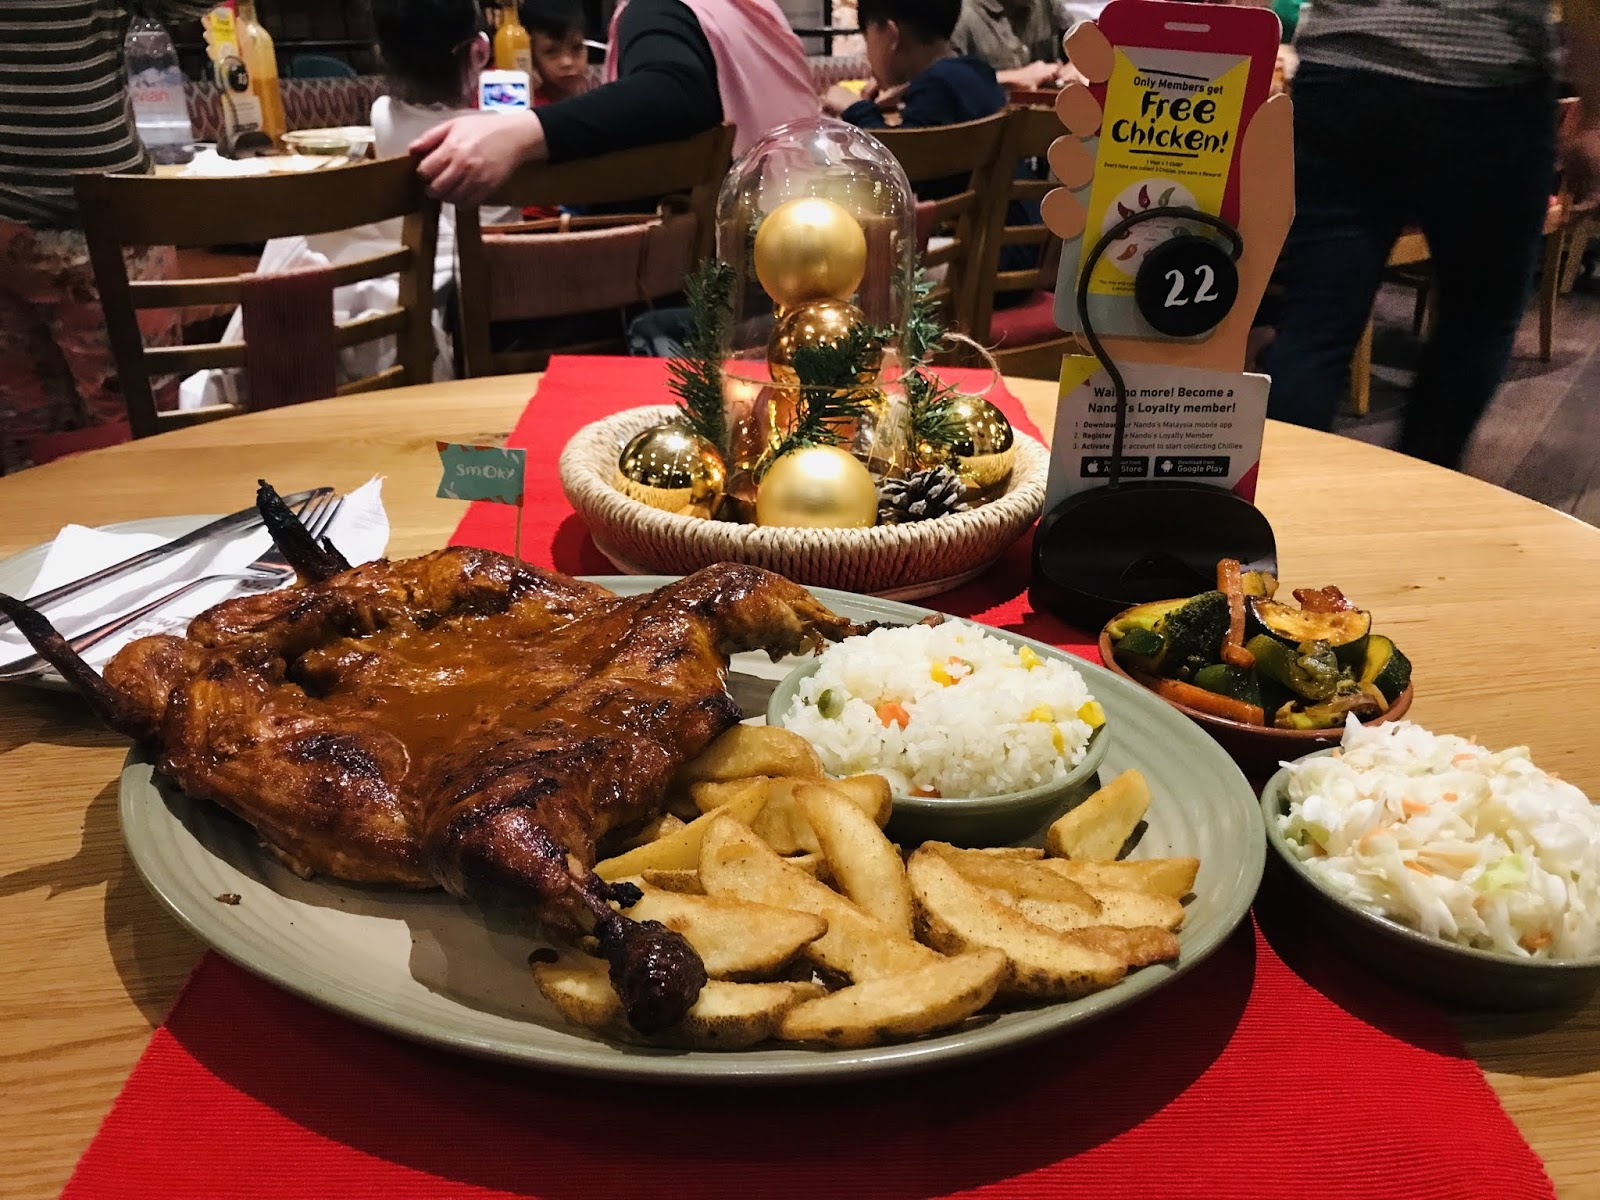 Get Ready for a SUPER-Natural experience with Nando's Smoky PERi-PERi